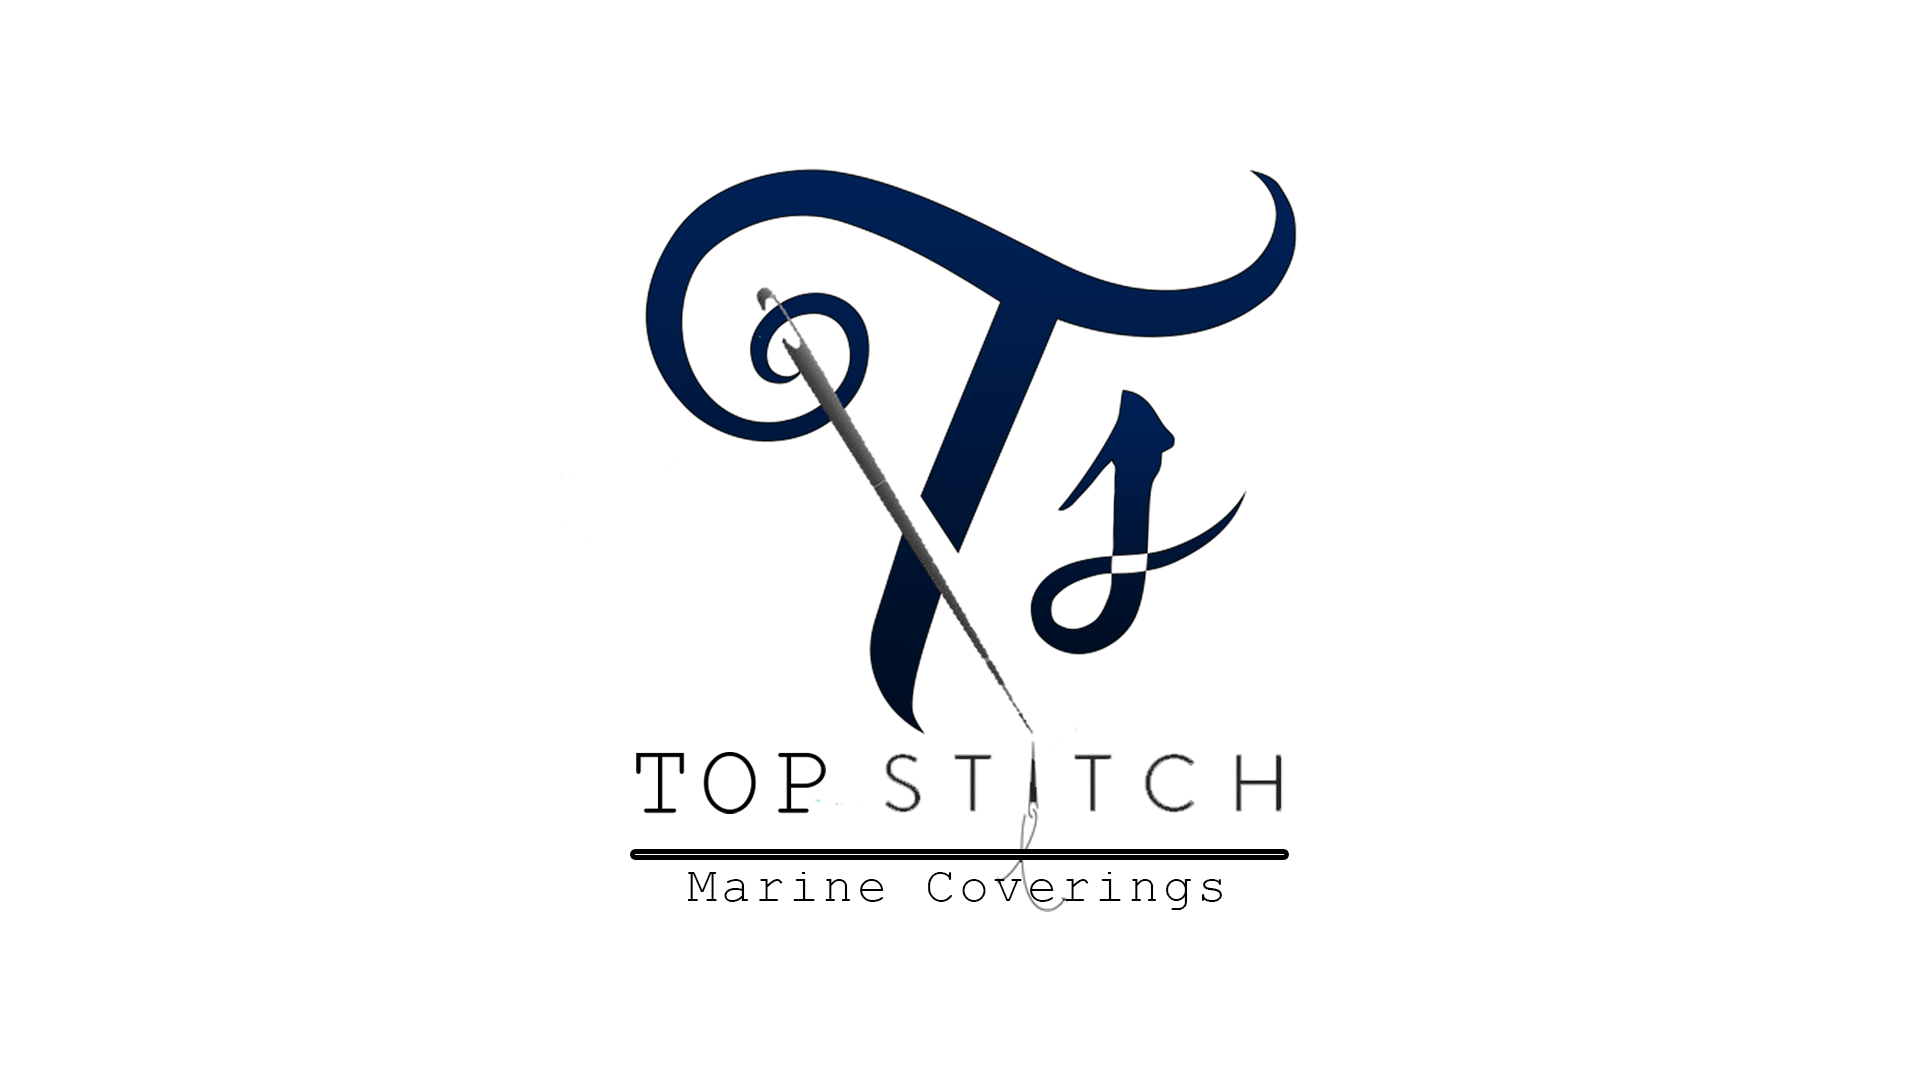 Top Stitch Marine Coverings